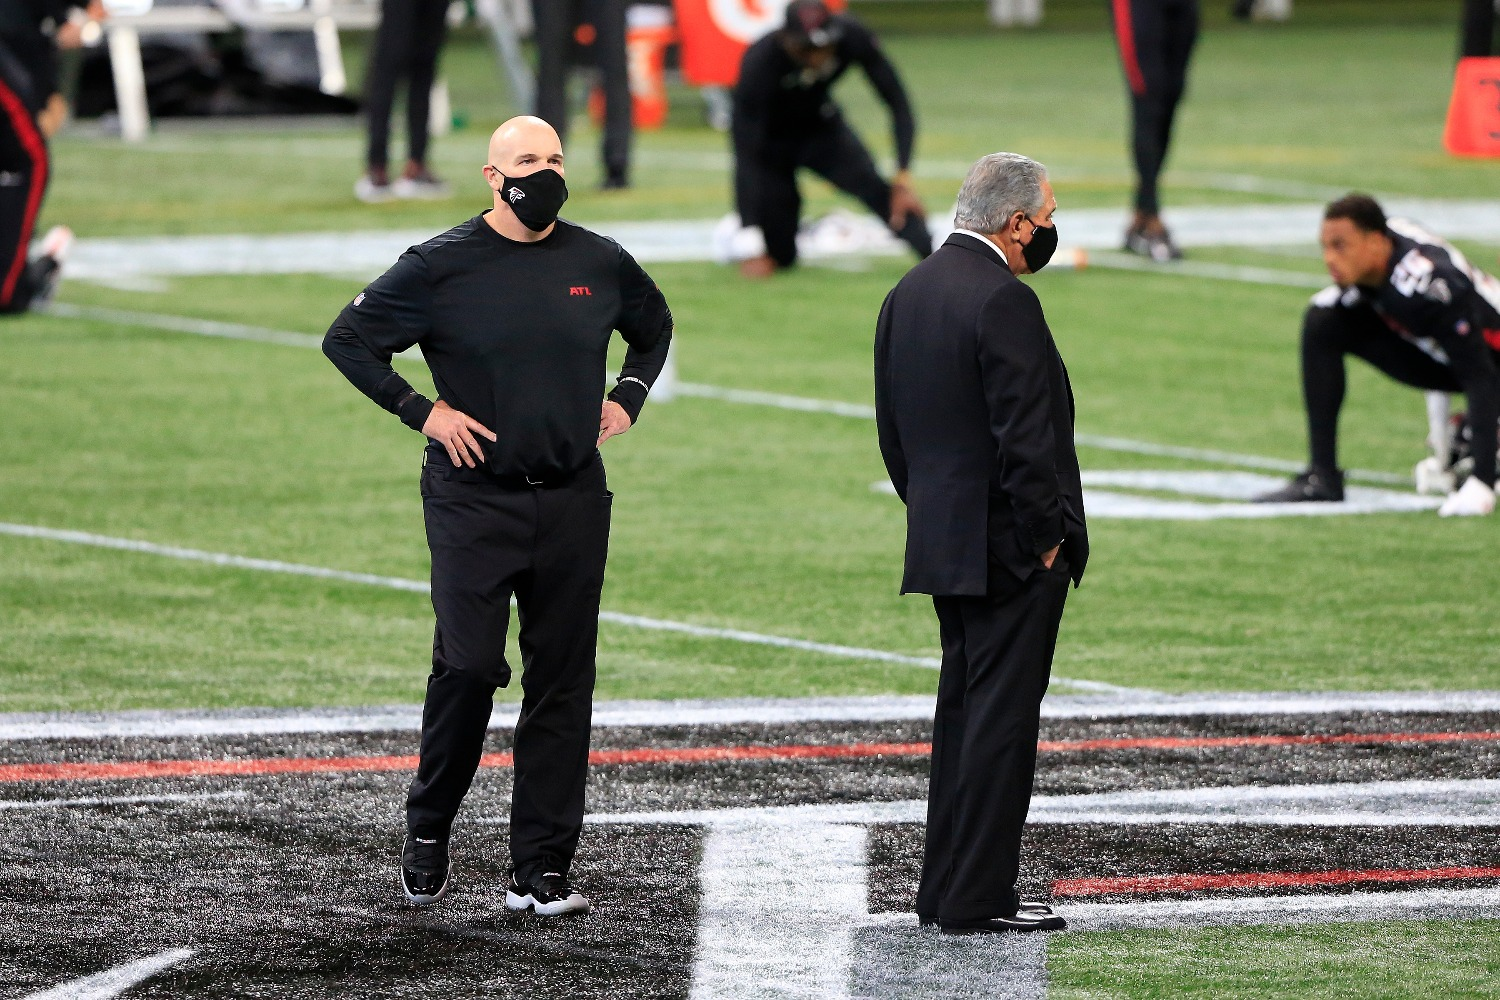 The Atlanta Falcons Just Admitted They Made a Massive Mistake